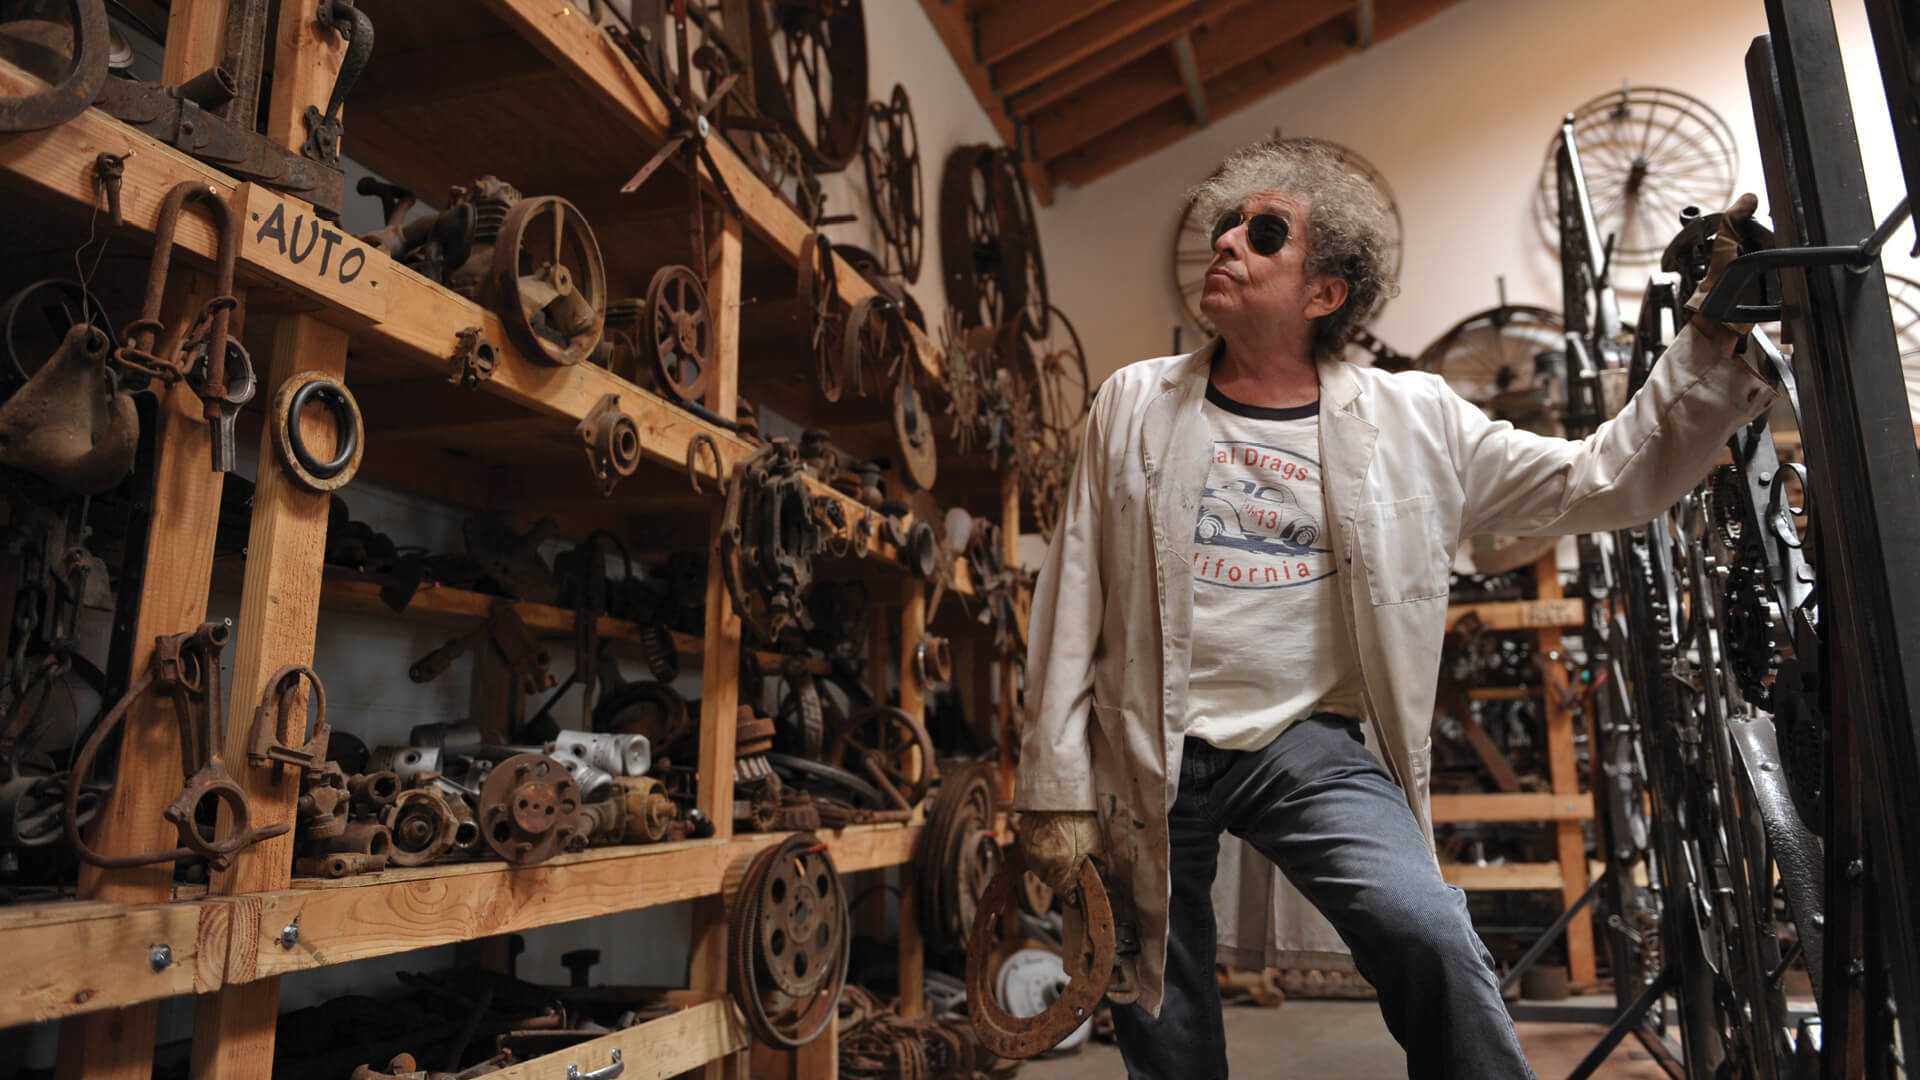 Bob Dylan in his iron-works studio | Editions at London's Halcyon Gallery | STIRworld